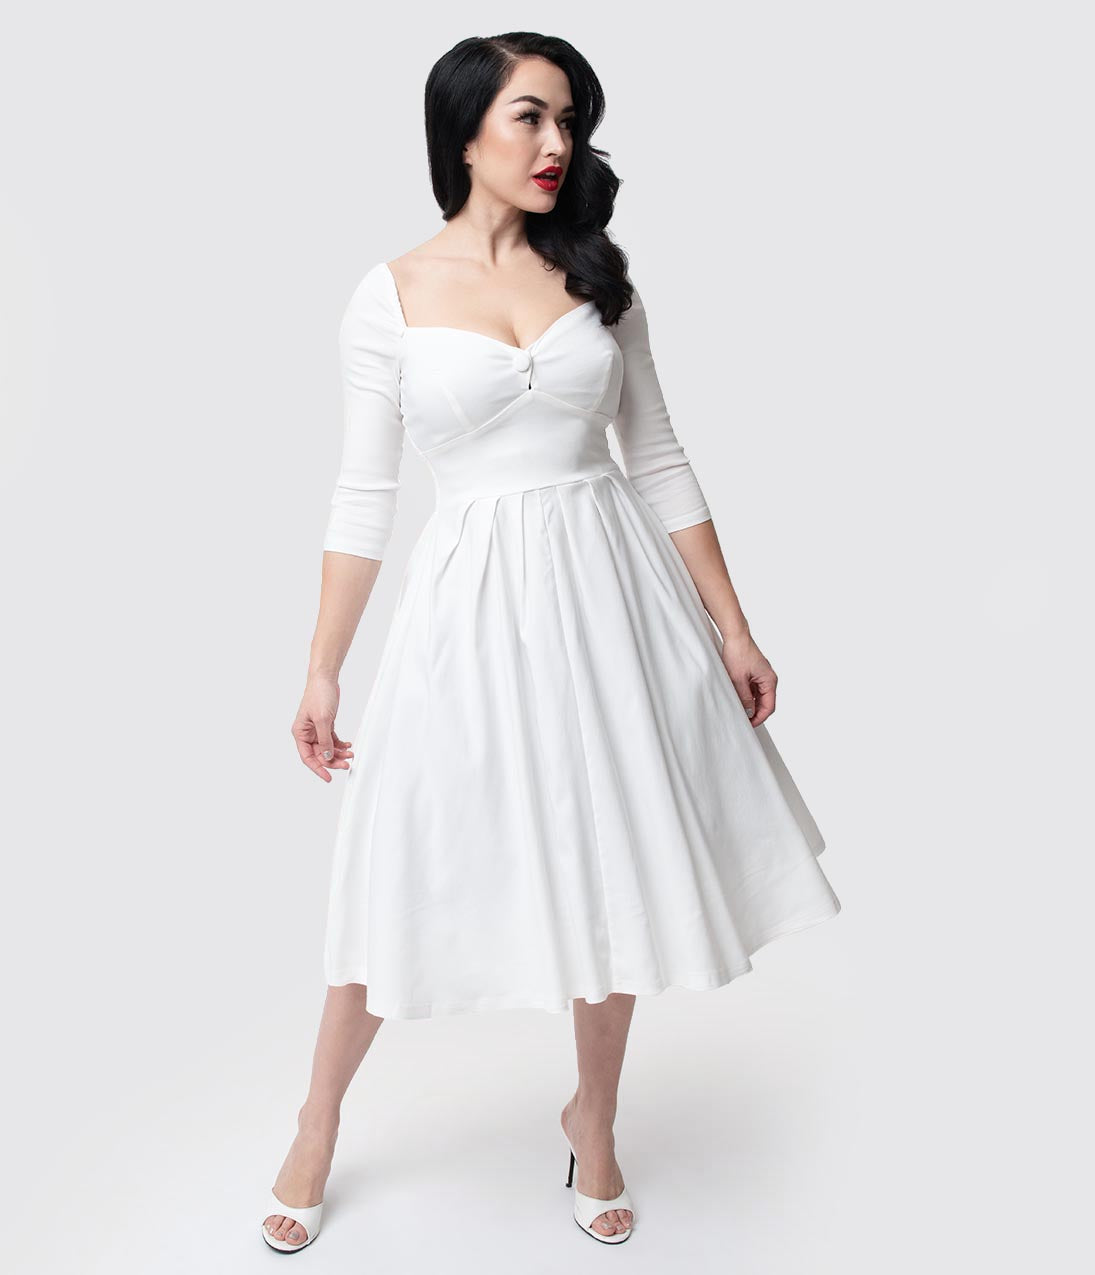 1950 Style Clothing- A Shopping Guide Unique Vintage 1950S Style Ivory Bengaline Sweetheart Lamar Swing Dress $98.00 AT vintagedancer.com